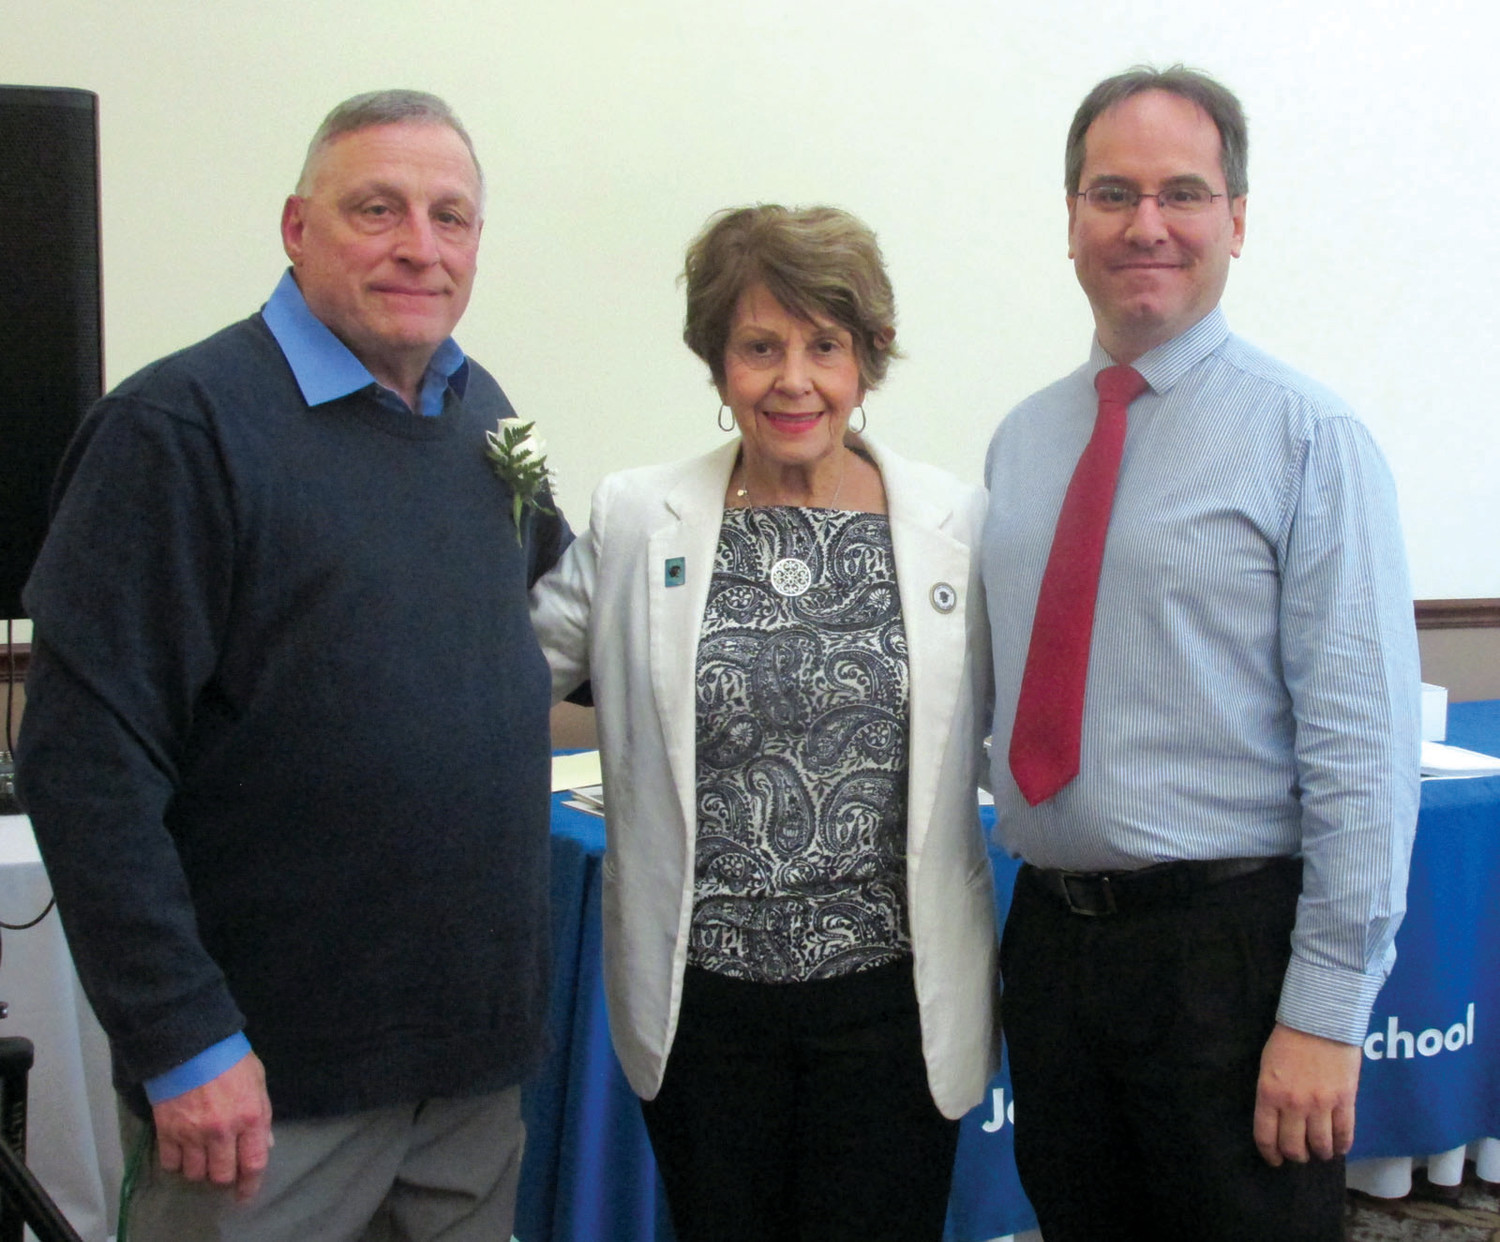 LIFETIME LINK: Don Iafrate, Class of 1967, is joined by Lee Mazzie, and athletic director Gary V. Mazzie. (Photo by Pete Fontaine)